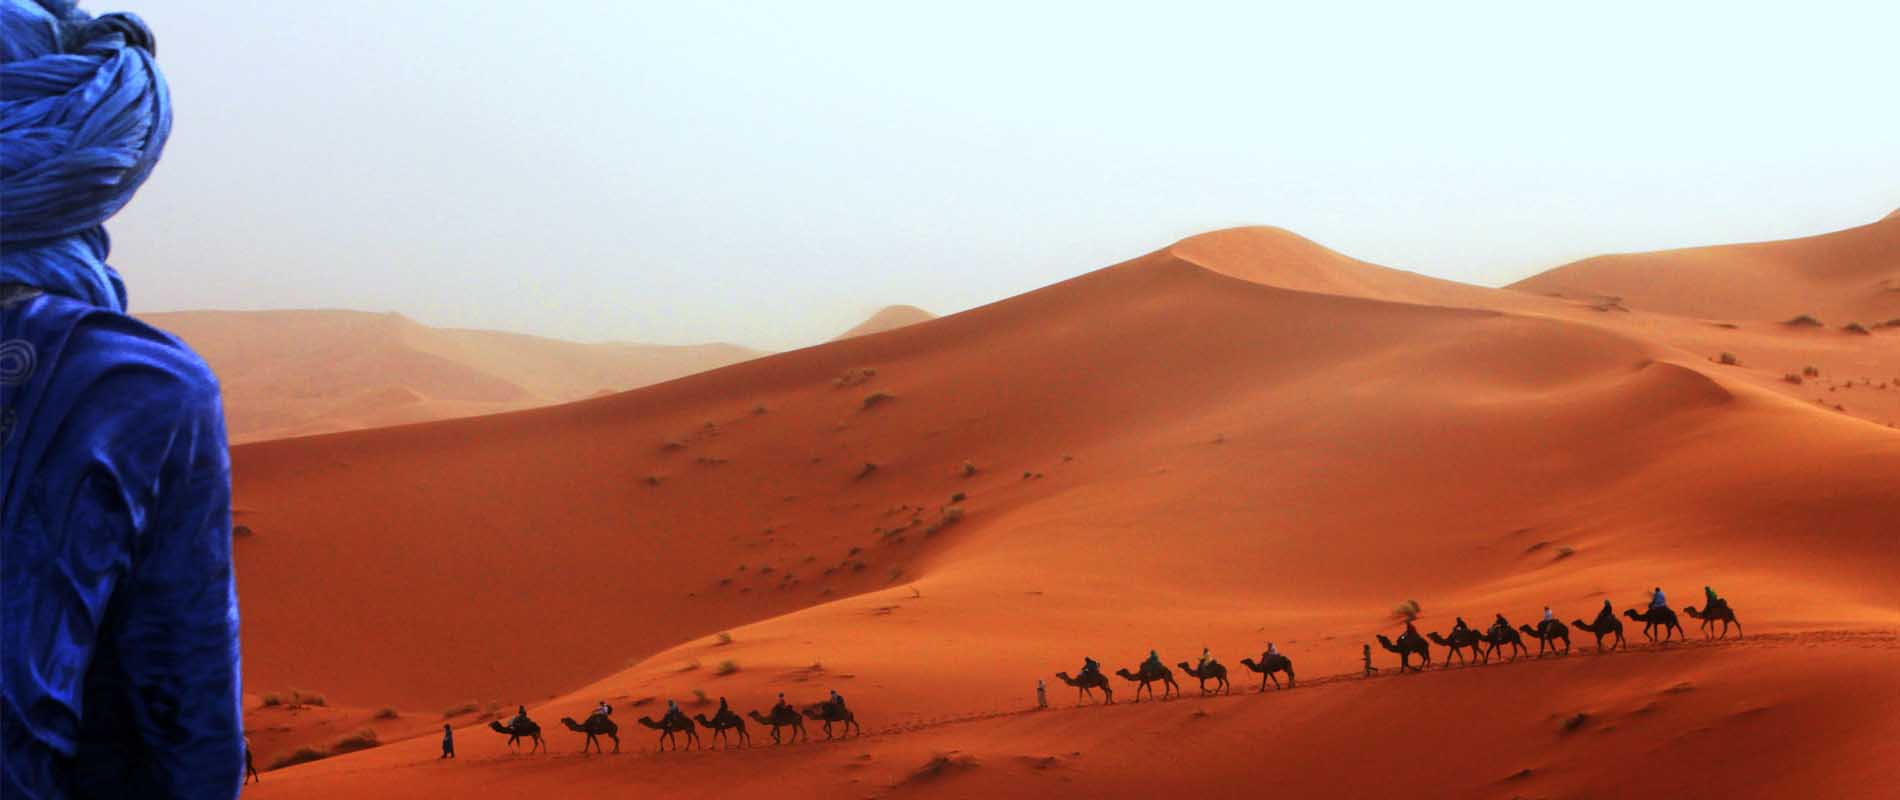 Excursion Fes Merzouga